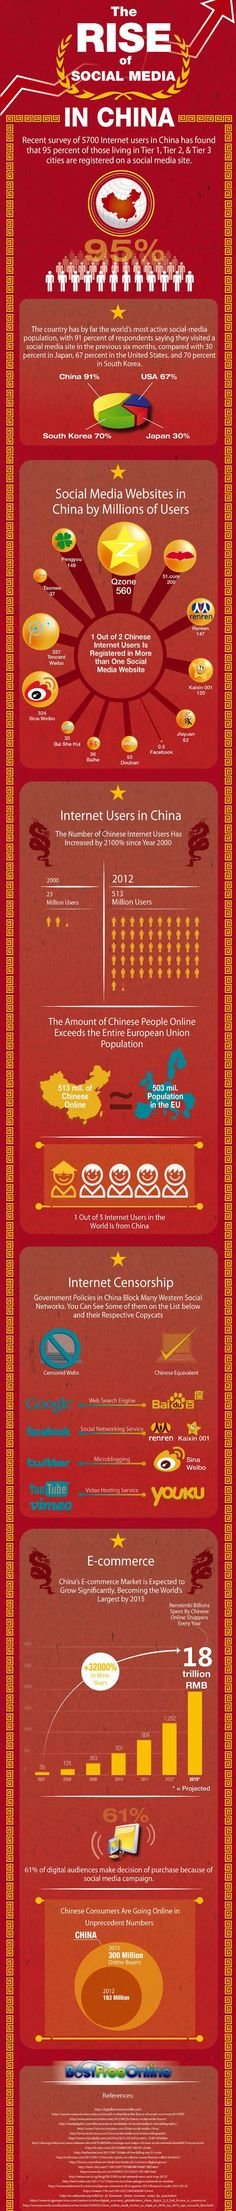 China Social Media Infographic - the rise of social media in China. Will Facebook ever be allowed in China? Hmm!